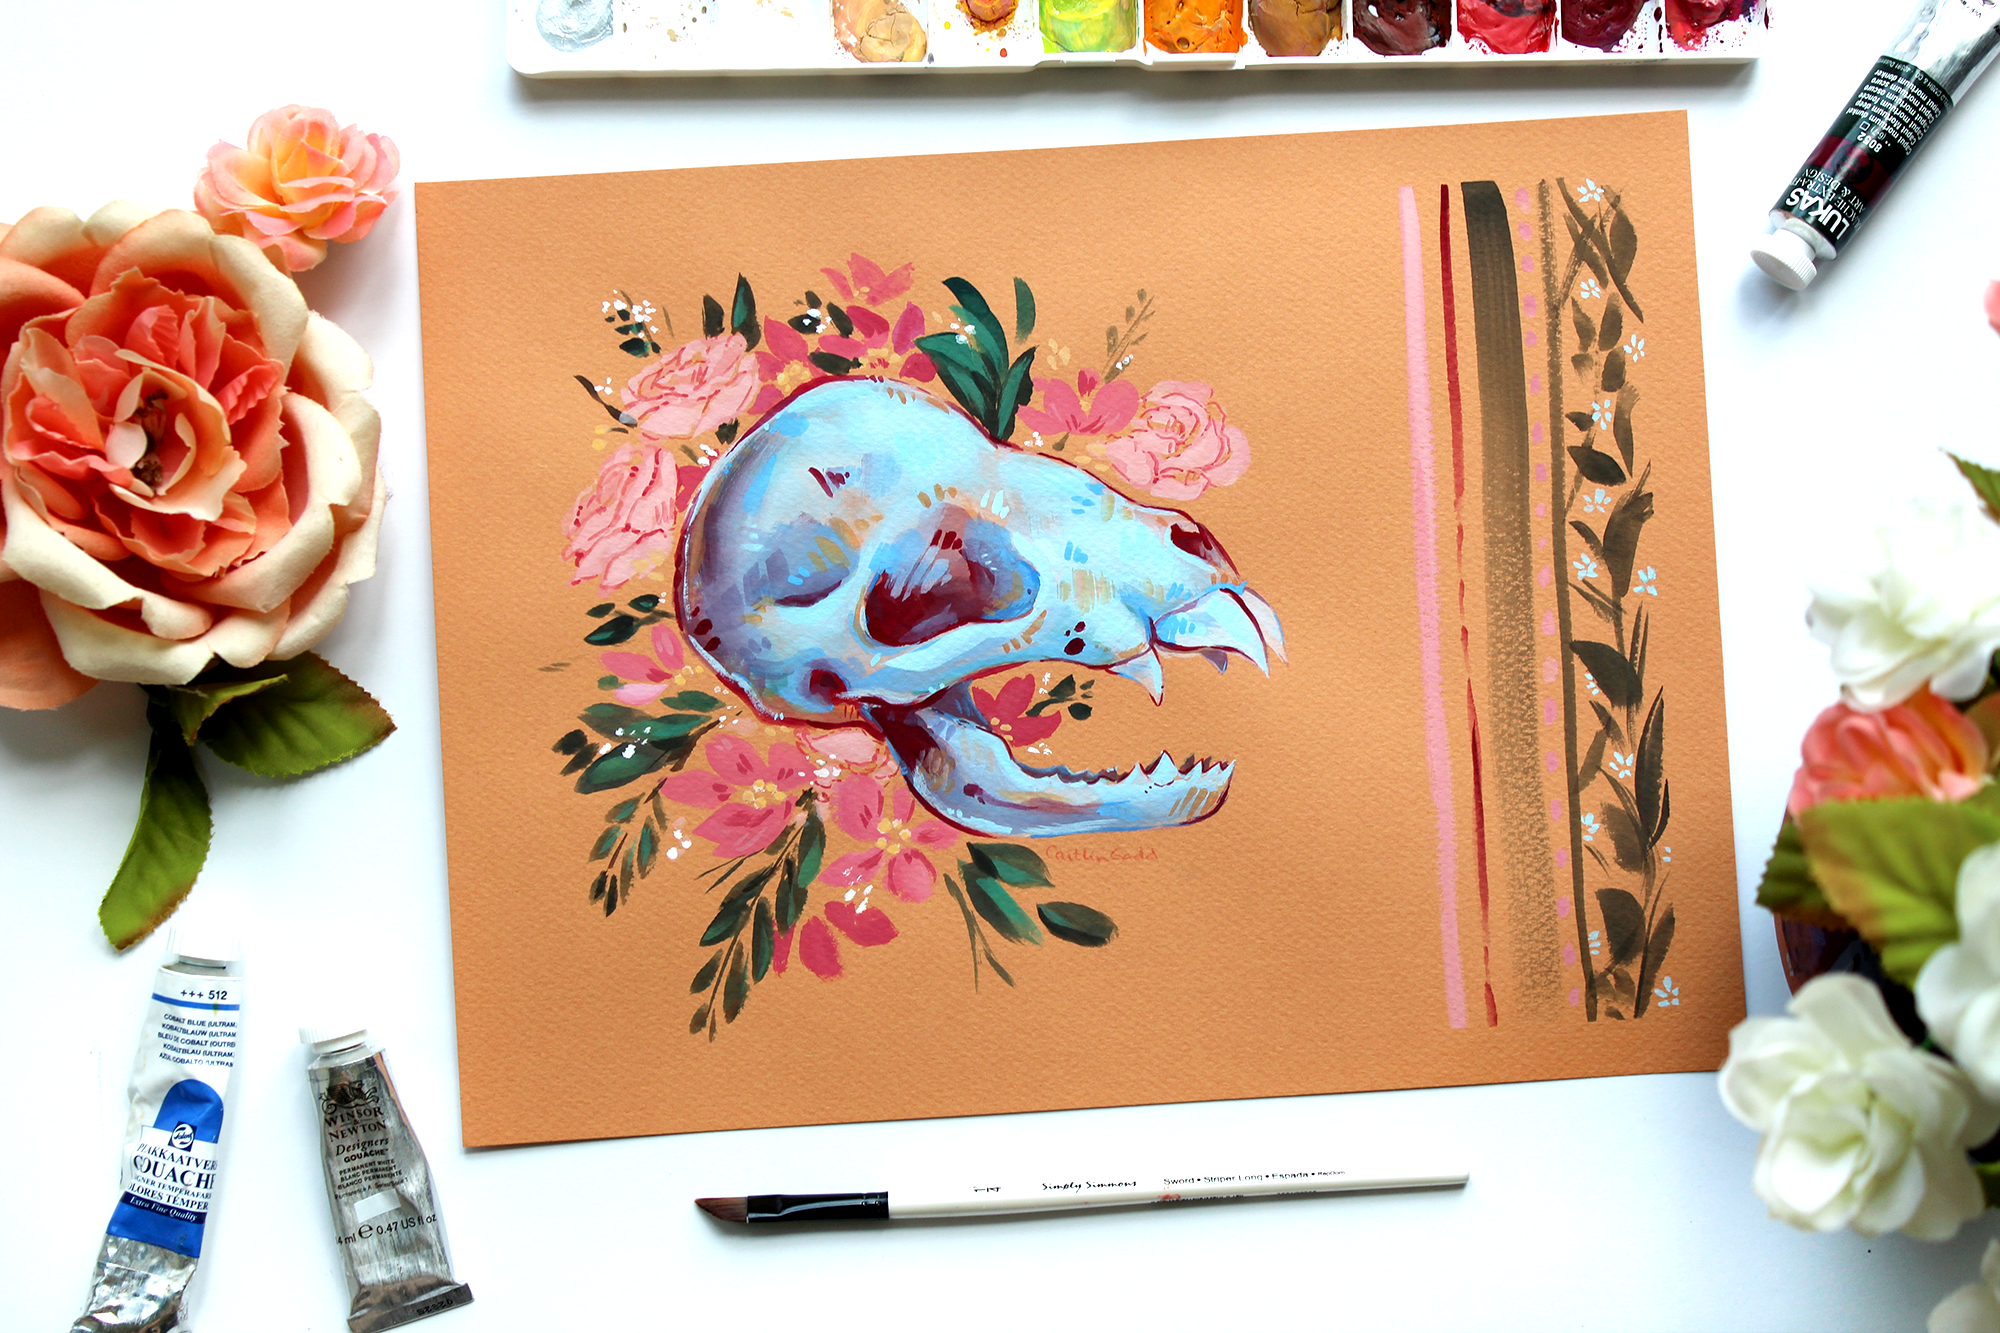 Original gouache painting of a bat skull with flowers